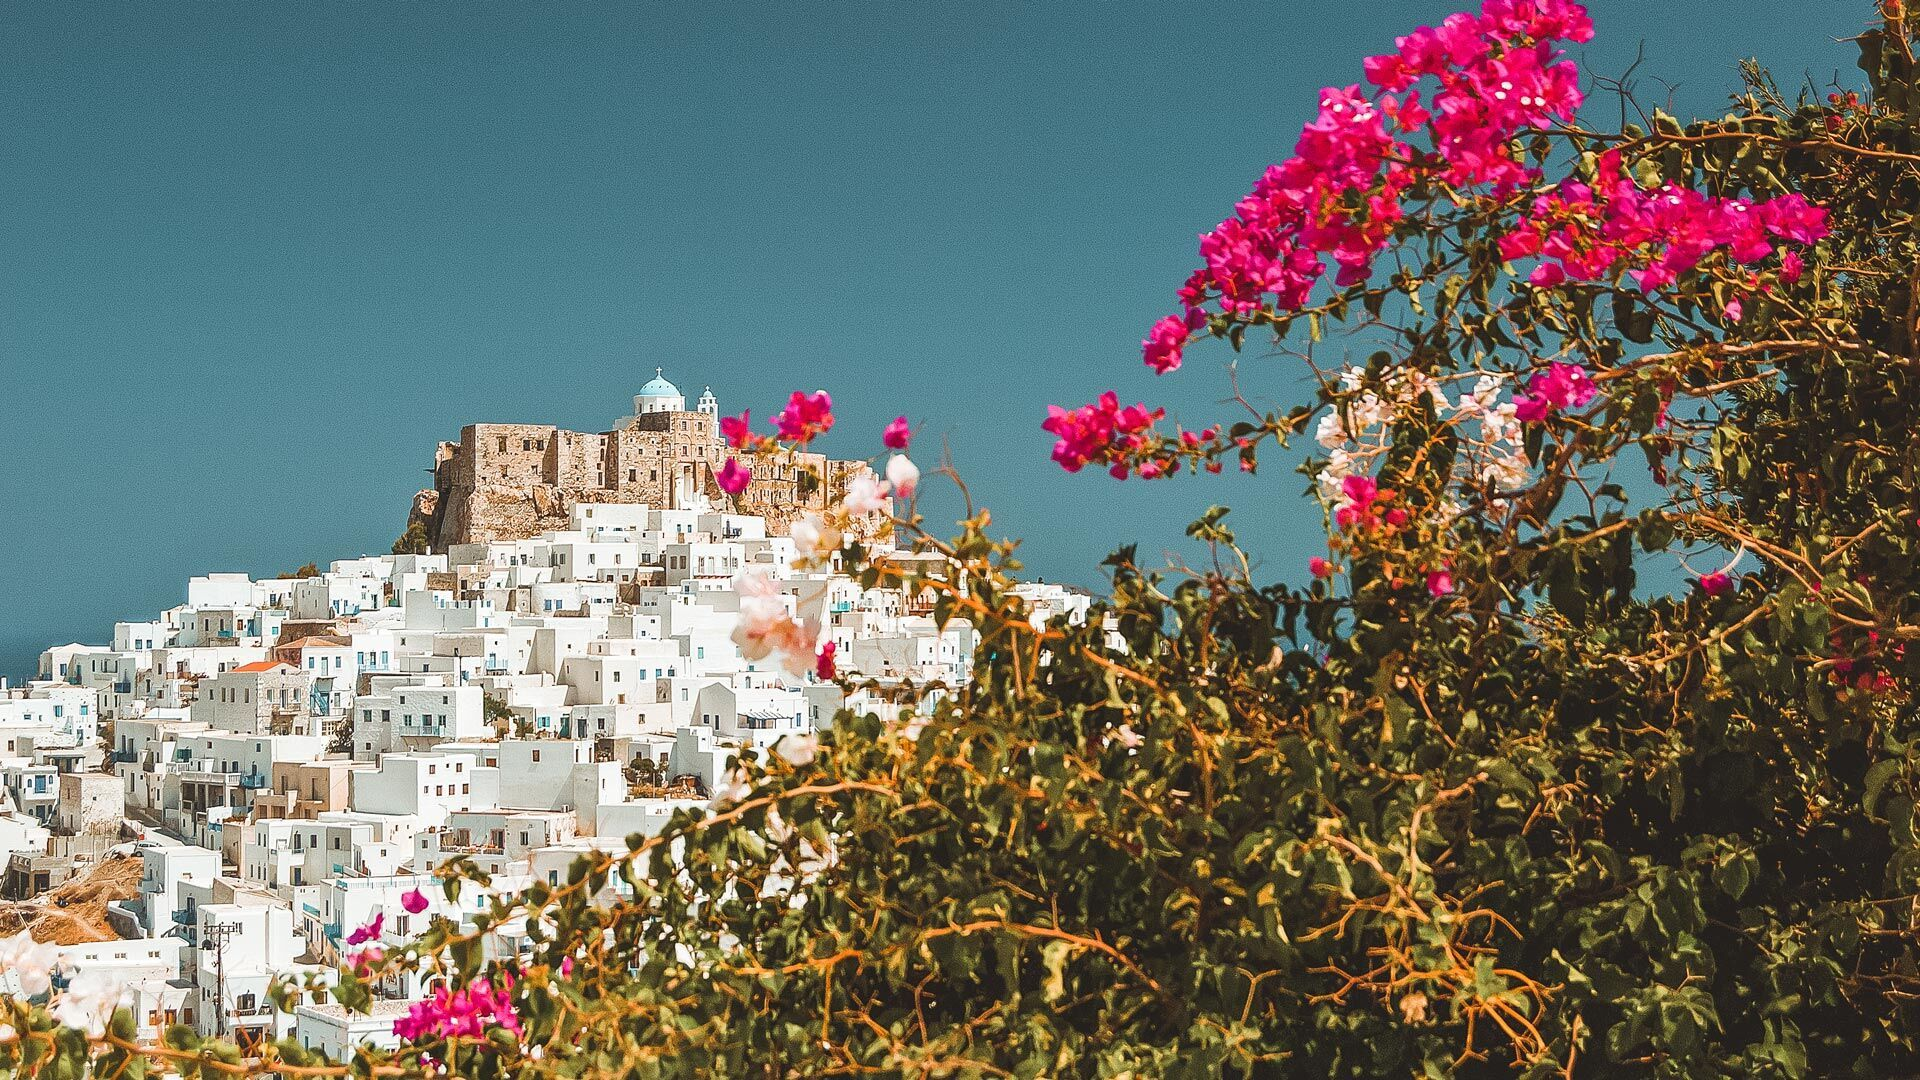 Hora's famous castle, majestic views of the Aegean, windmills and whitewashed homes make up a remarkable traditional settlement